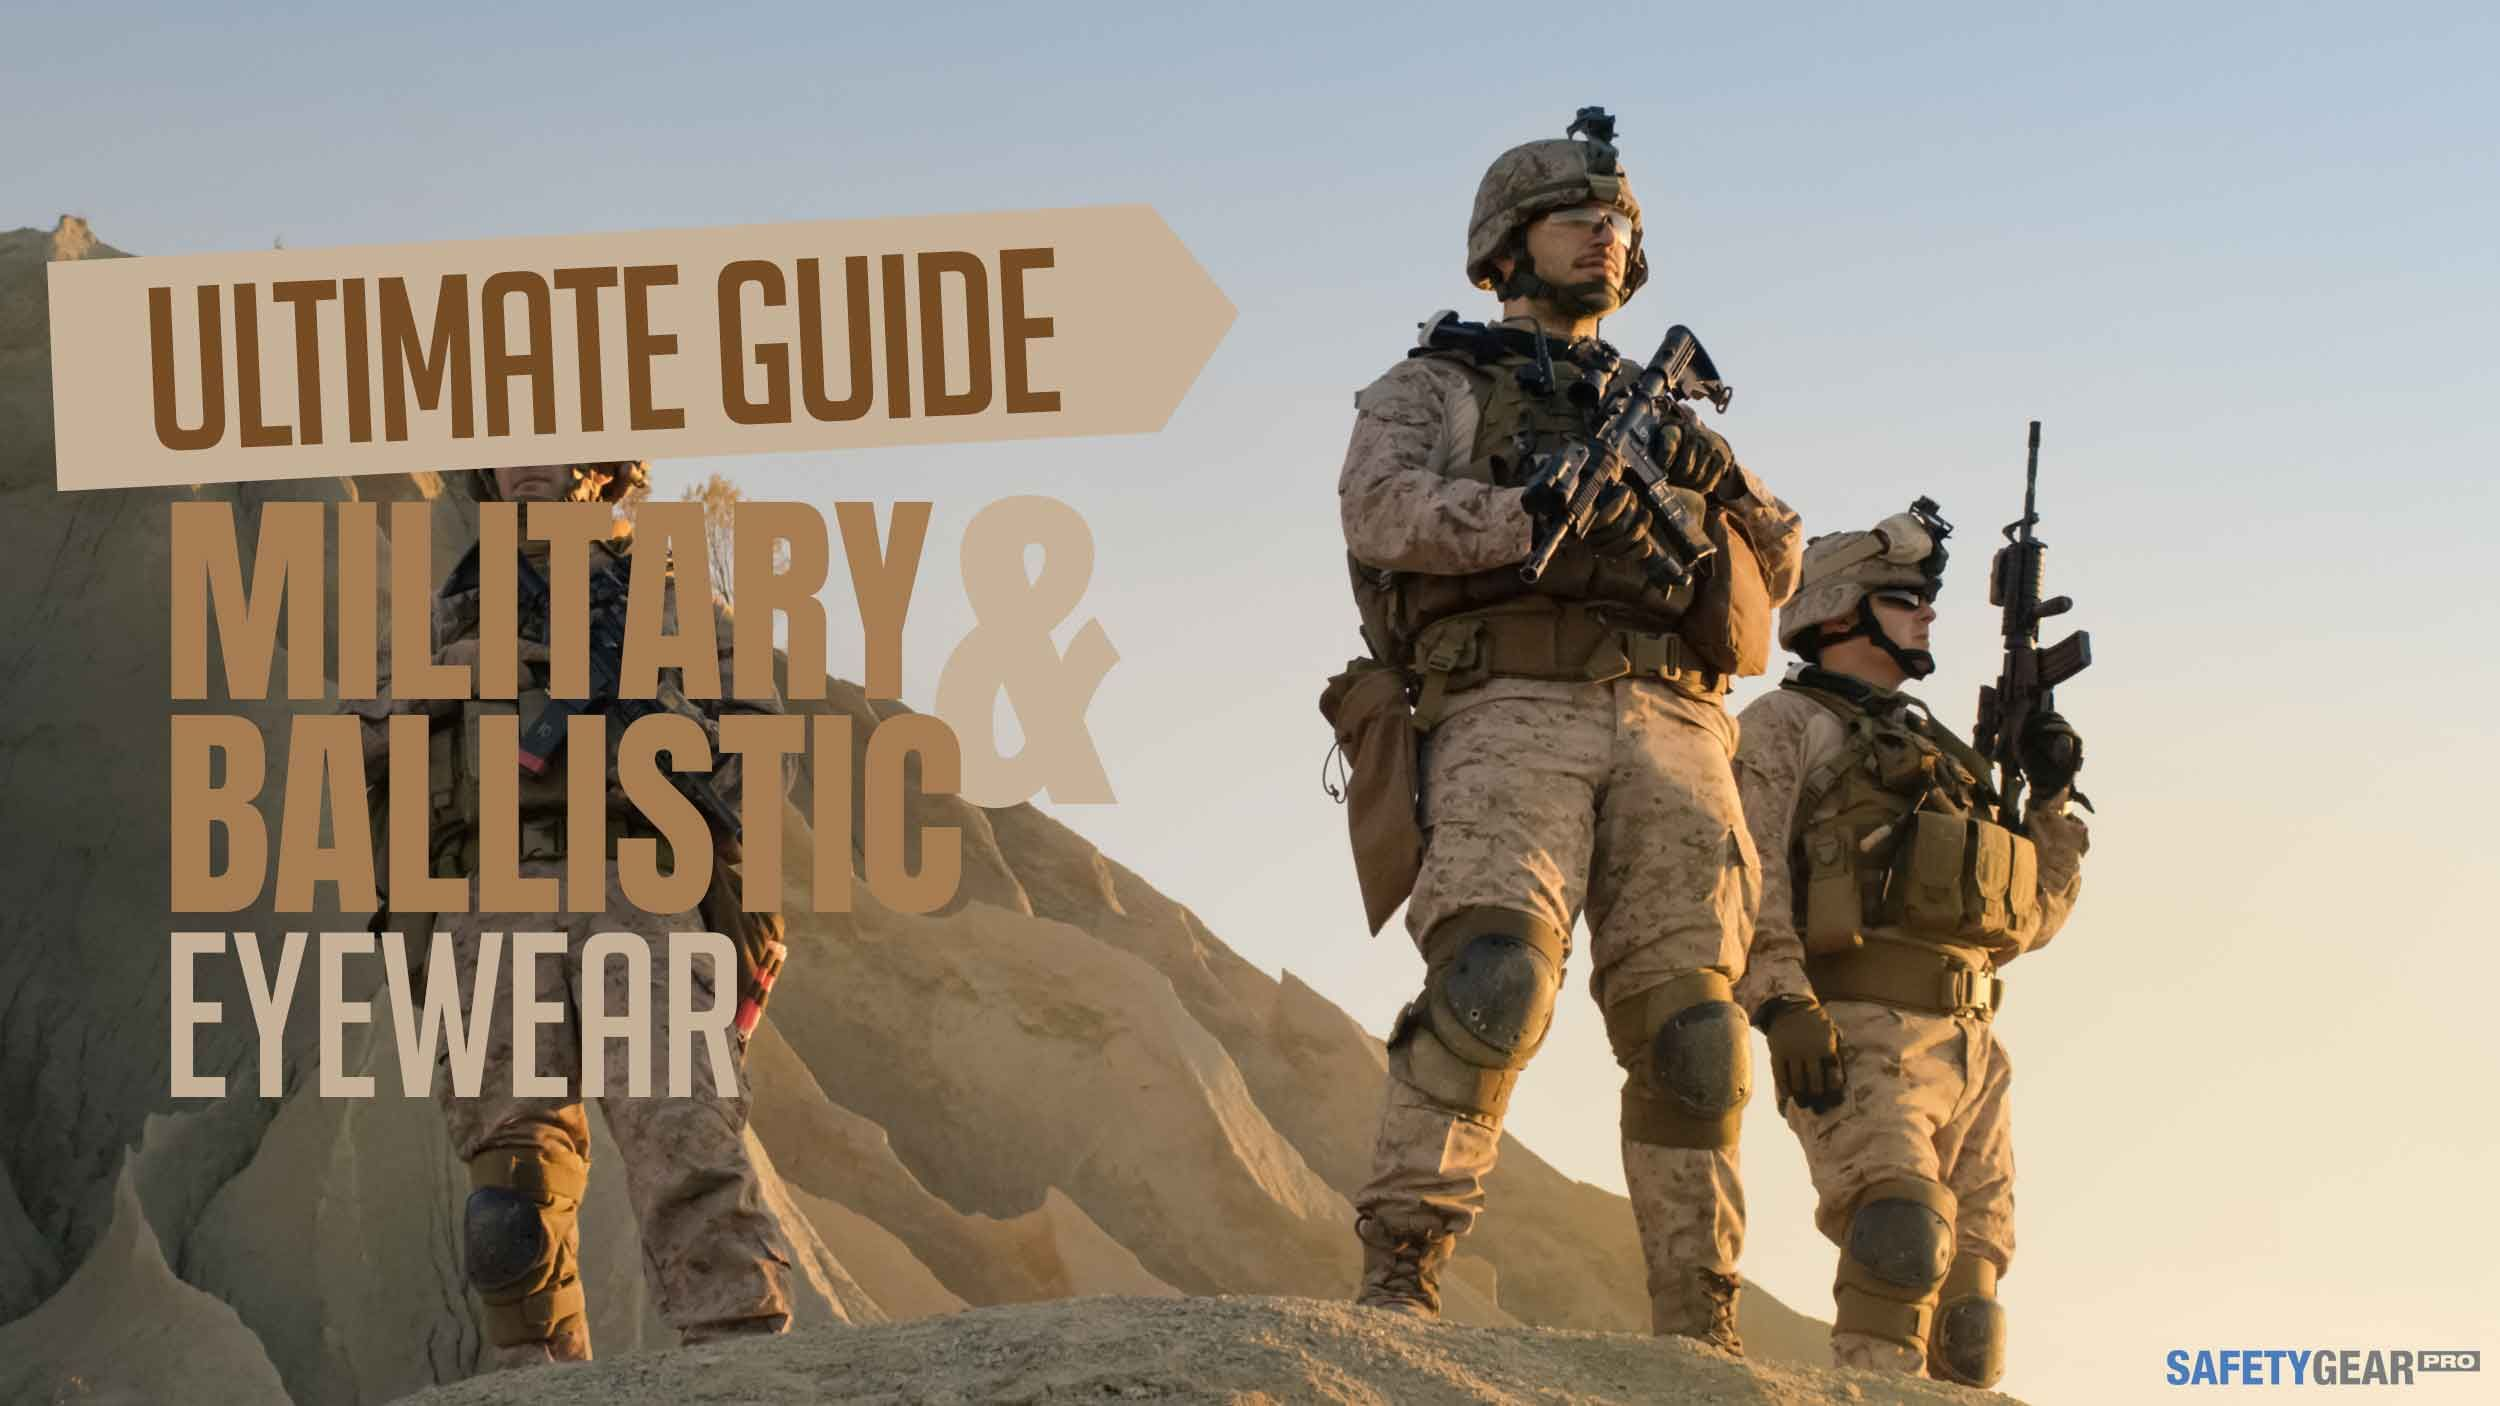 Ultimate Guide to Military & Ballistic Eyewear Infographic